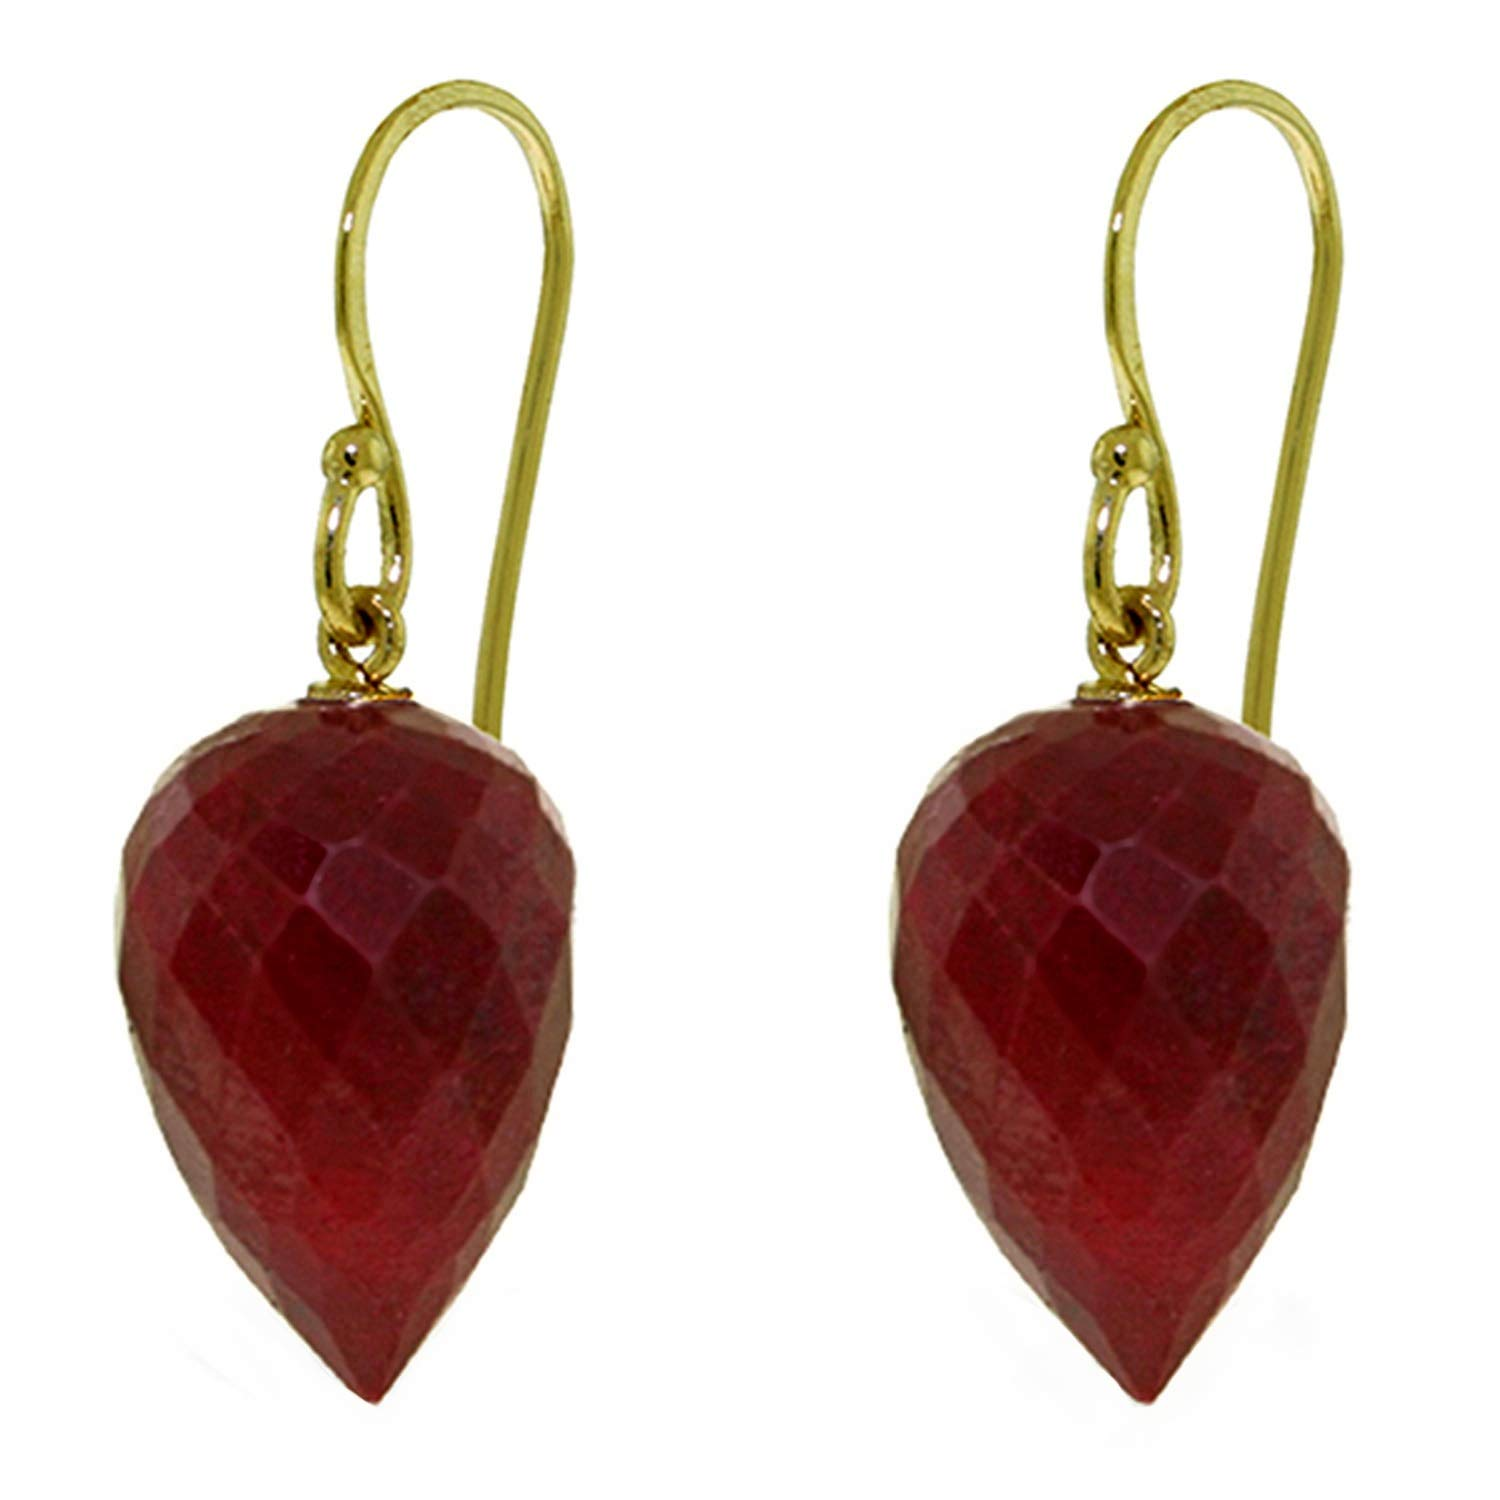 14k Yellow Gold Fish Hook Earrings with Natural Pointy Briolette Rubies